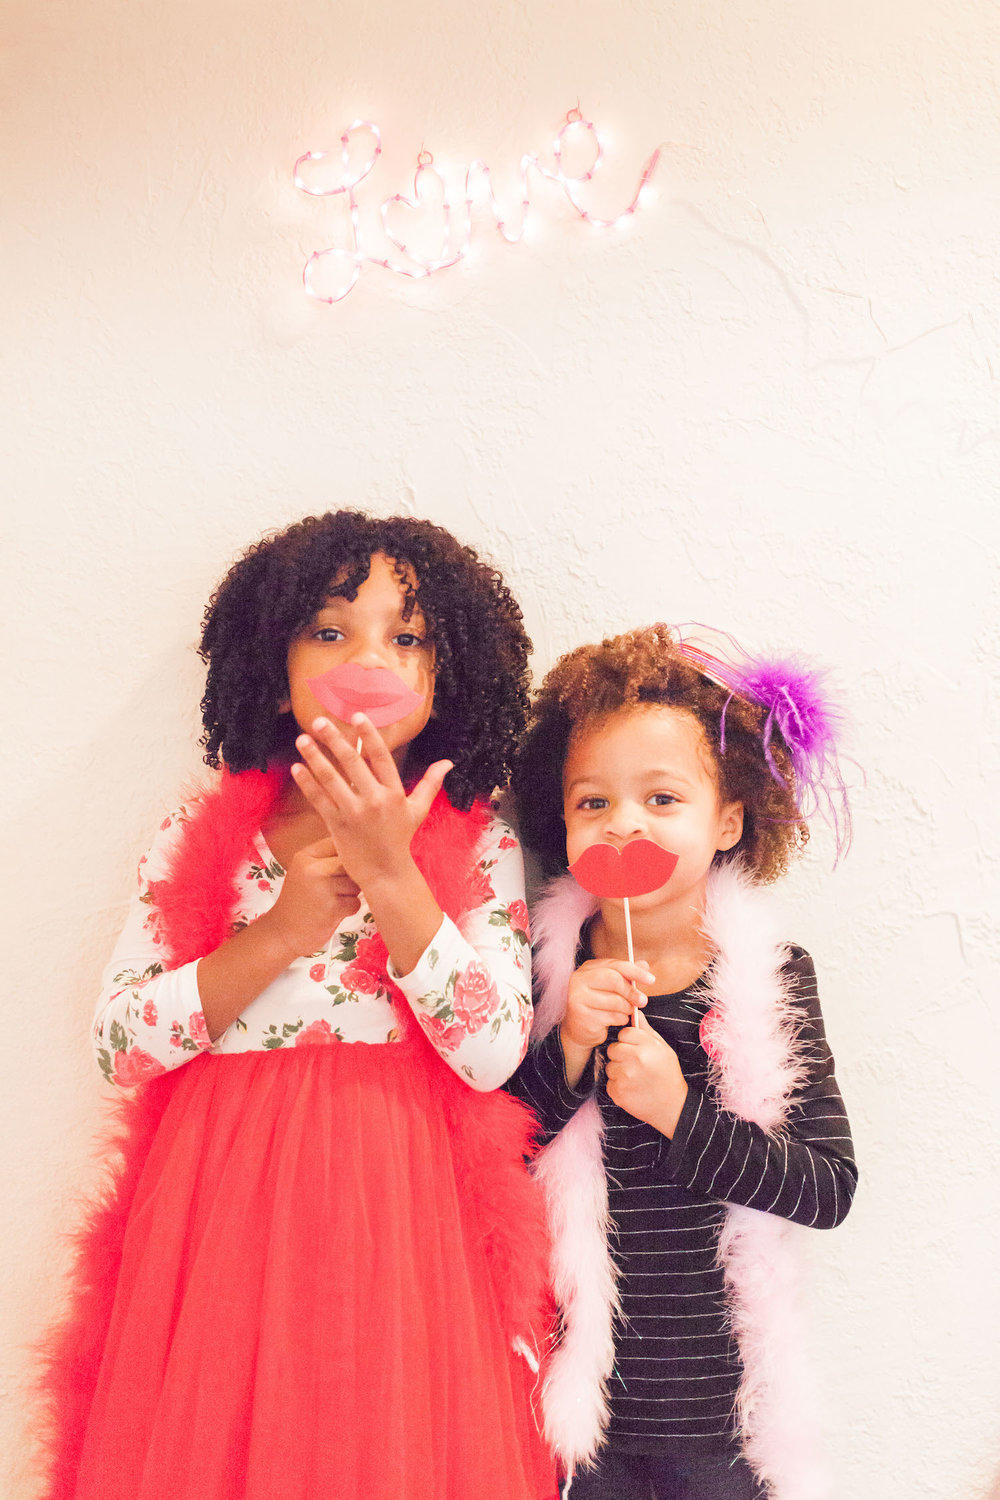 art-craft-valentines-day-party-Connie-Meinhardt-Photography-photo-booth-2.jpg